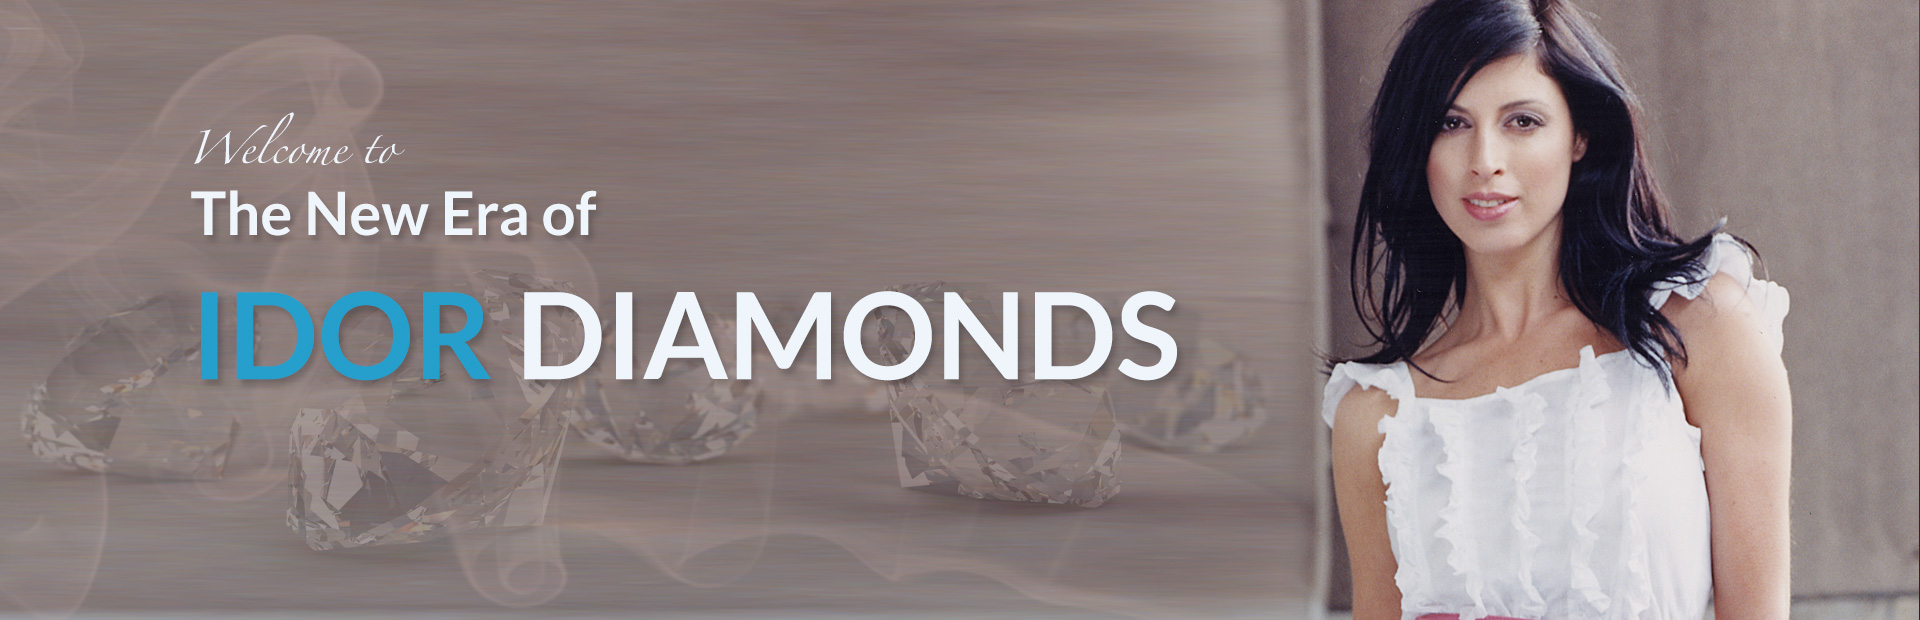 Welcome to The New Era of IDOR Diamonds